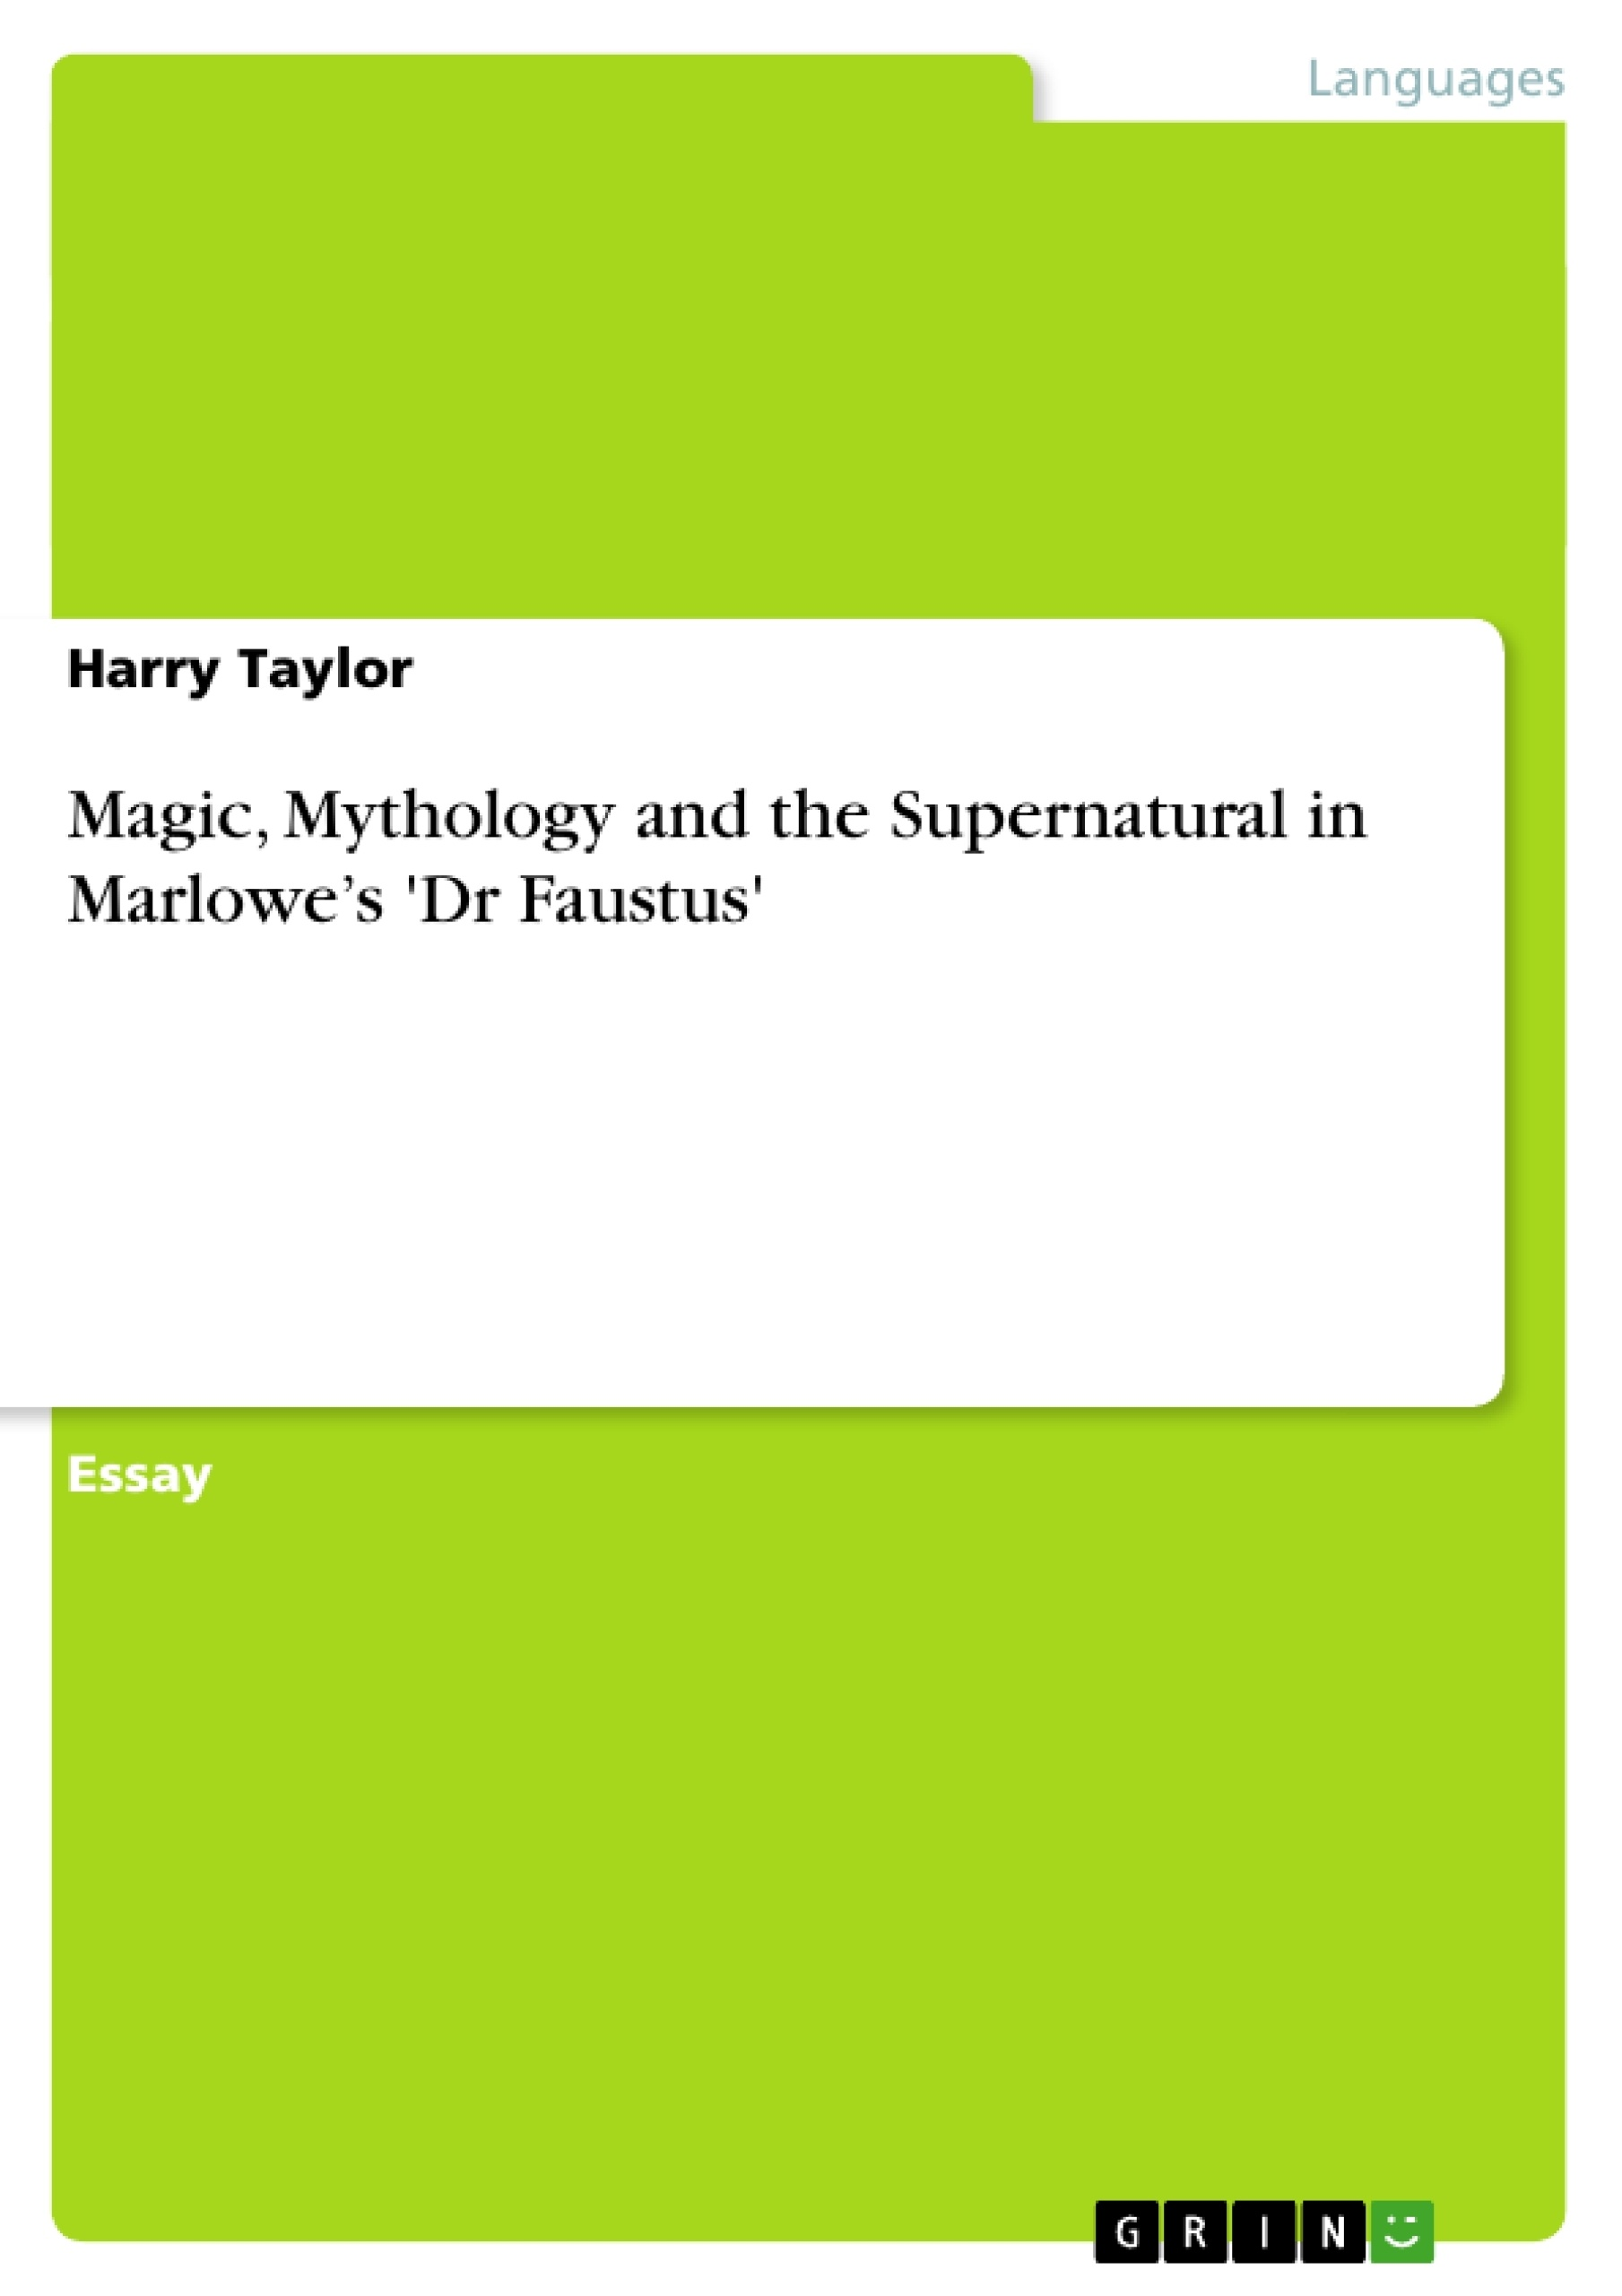 magic mythology and the supernatural in marlowe s dr faustus  upload your own papers earn money and win an iphone x